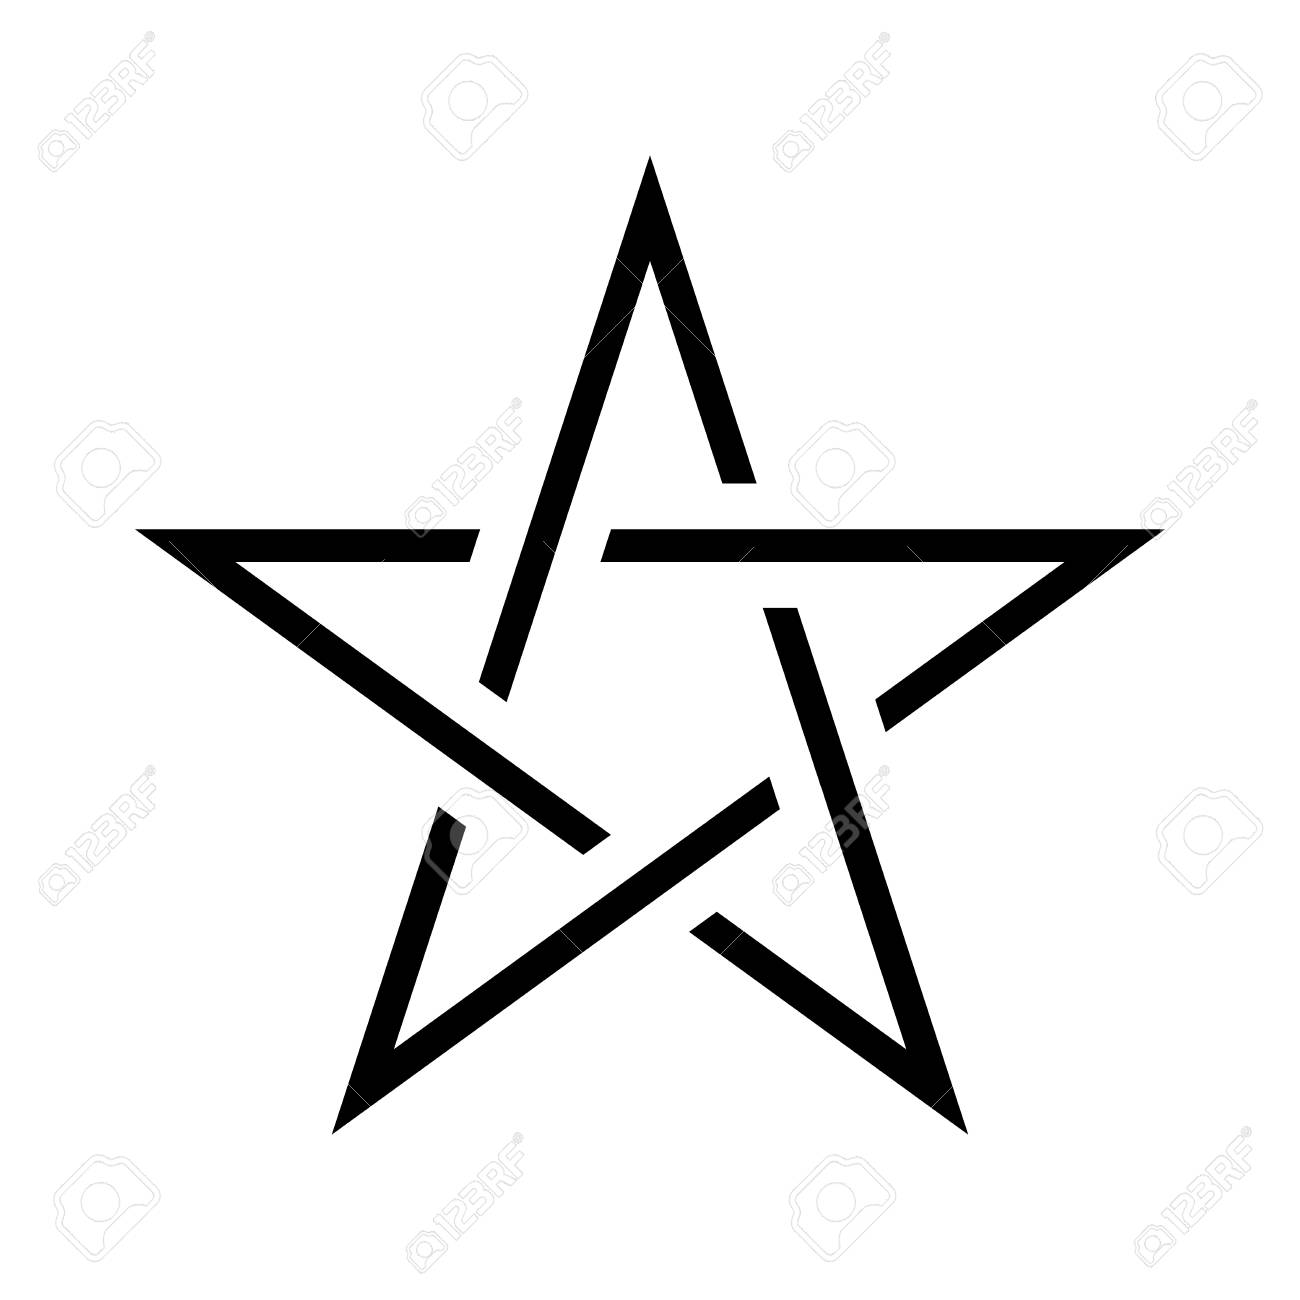 10a11f44c7a87 Pentagram sign - five-pointed star. Magical symbol of faith. Simple flat  black